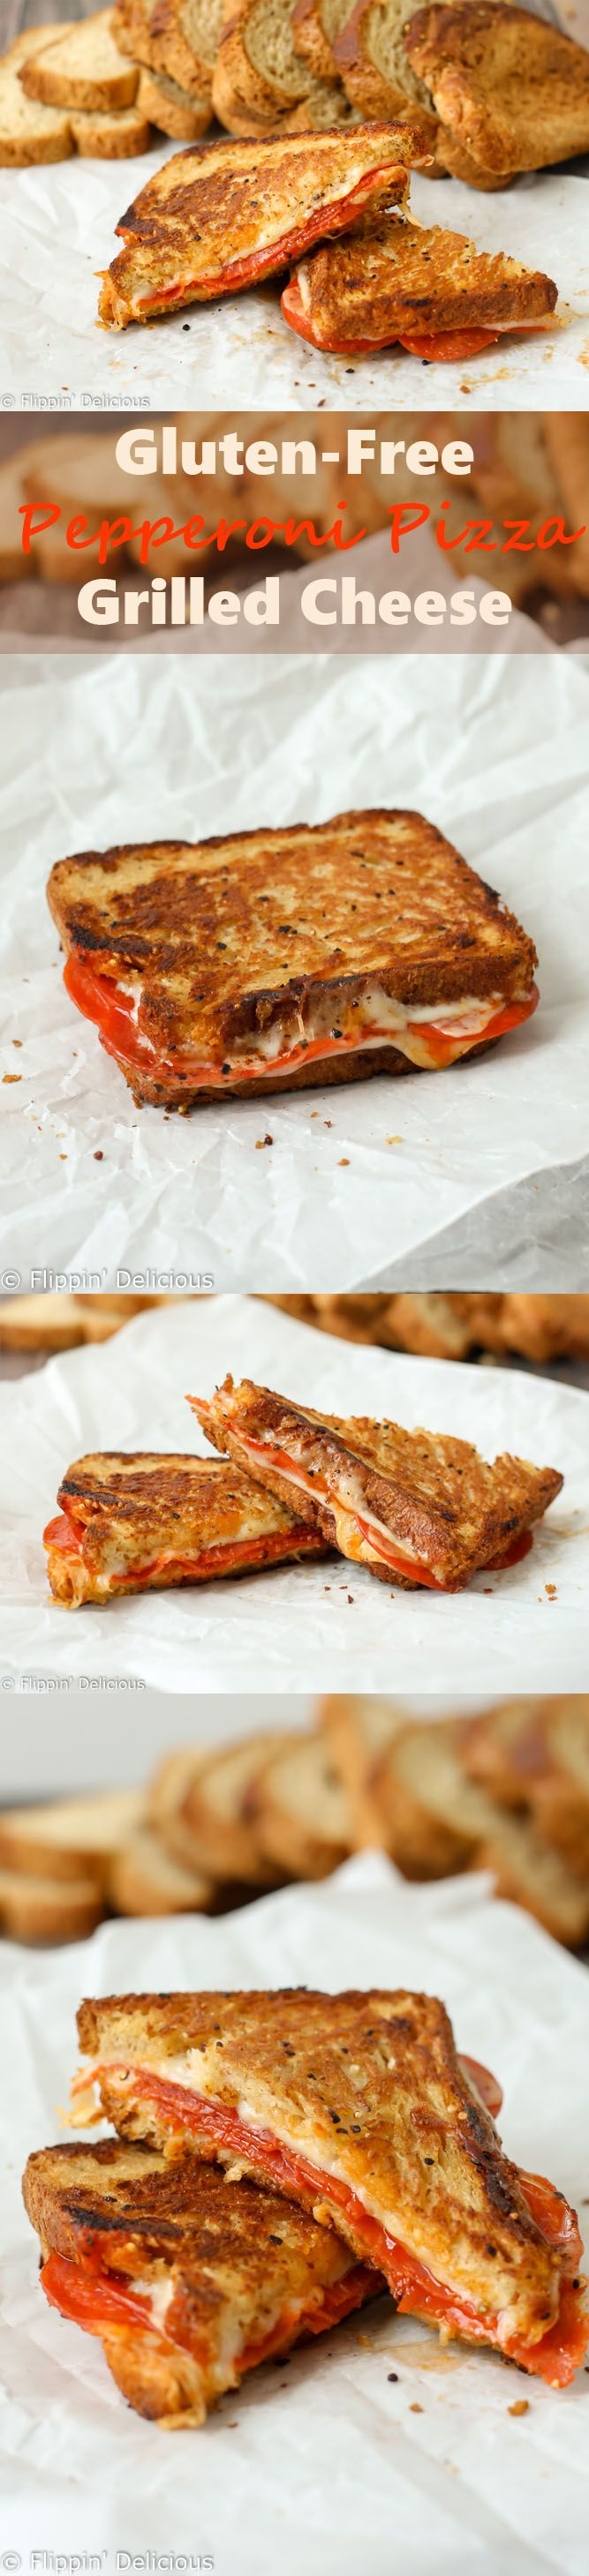 This Gluten Free Pepperoni Pizza Grilled Cheese Sandwich combines all of your favorite pizza flavors into a gooey gluten free grilled cheese sandwich! #LoveBreadAgain @canyonbakehouse AD